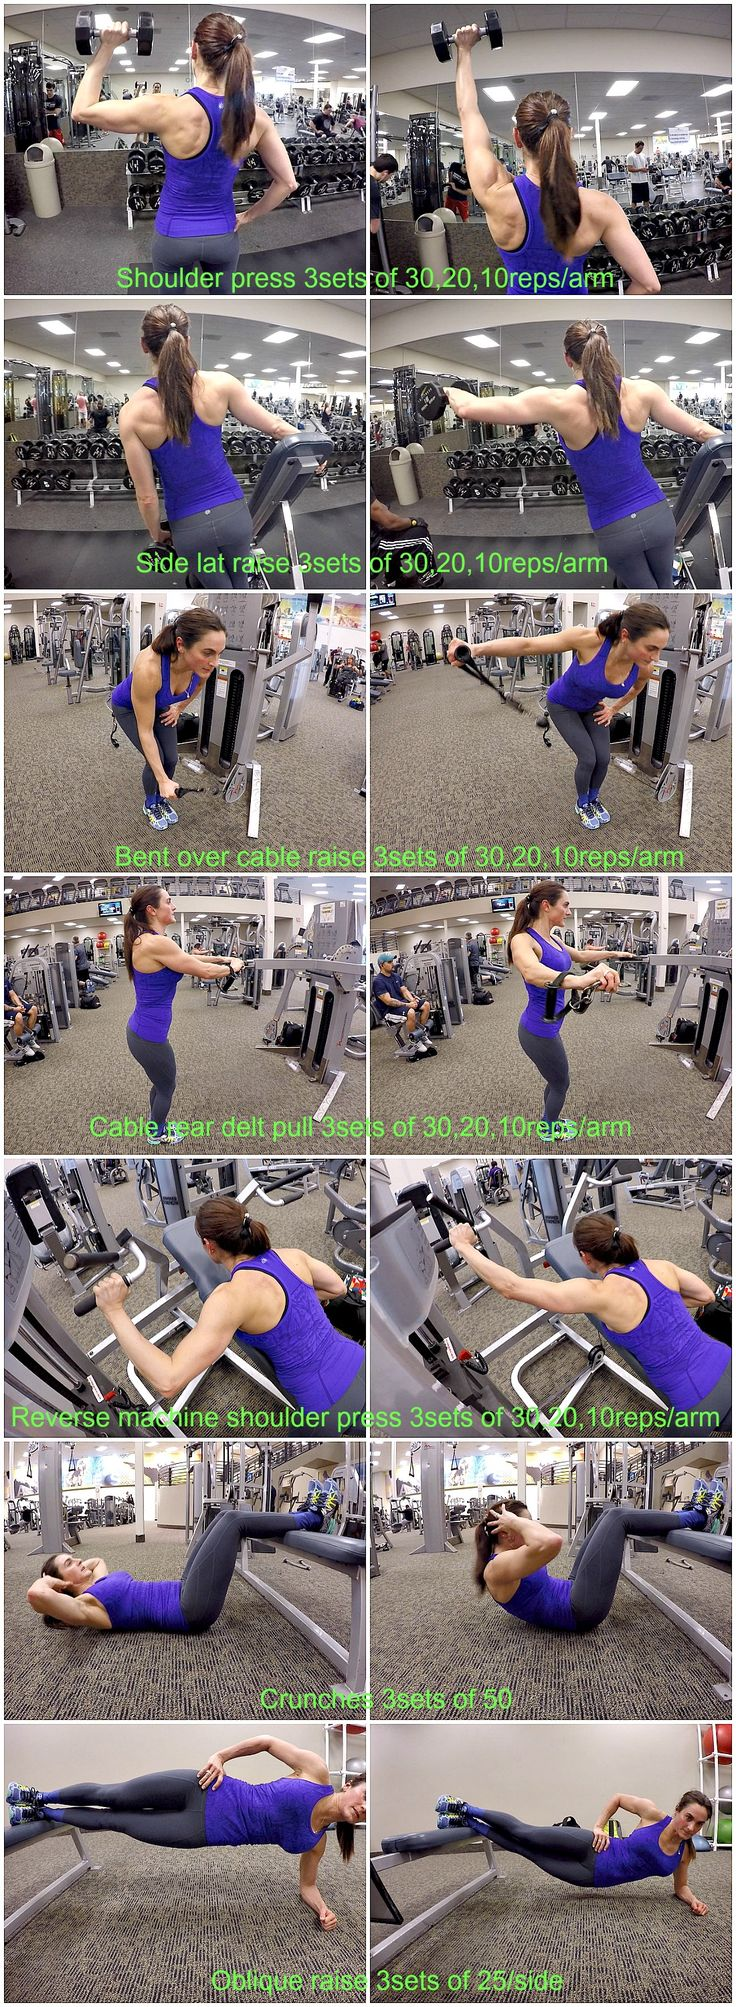 10 Weeks To Fitness-Day 63: SHOULDERS & ABS